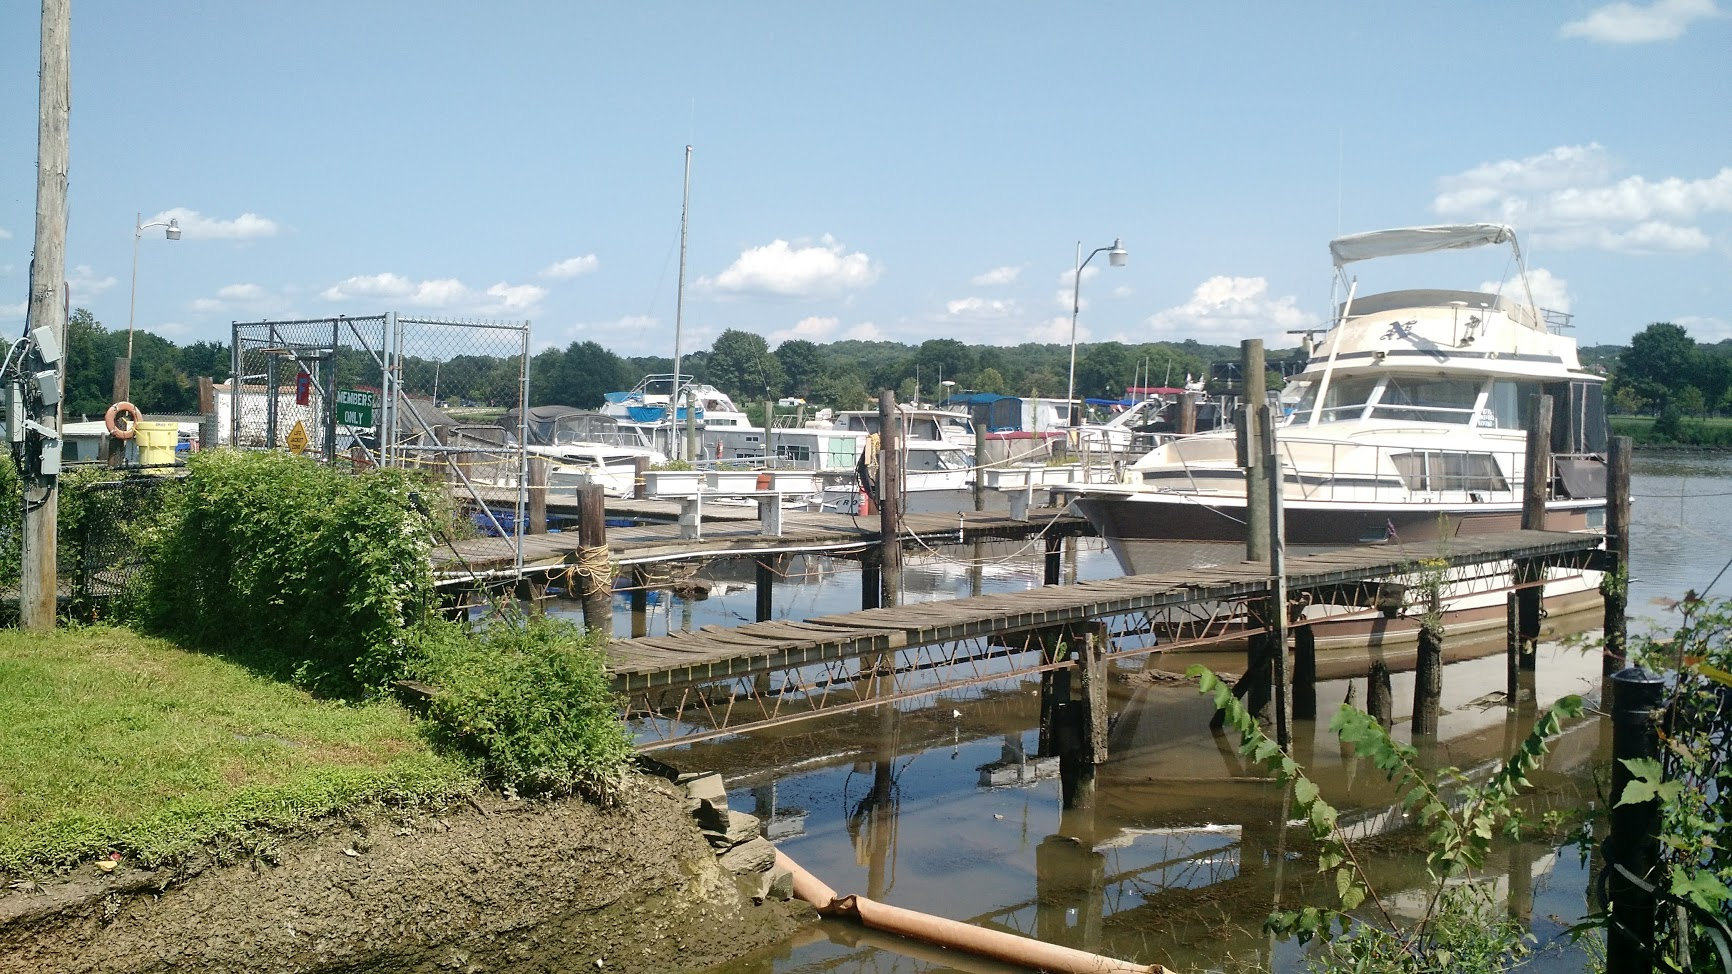 Many vessels at the Seafarers docks are unable to move during low tide due to silt.